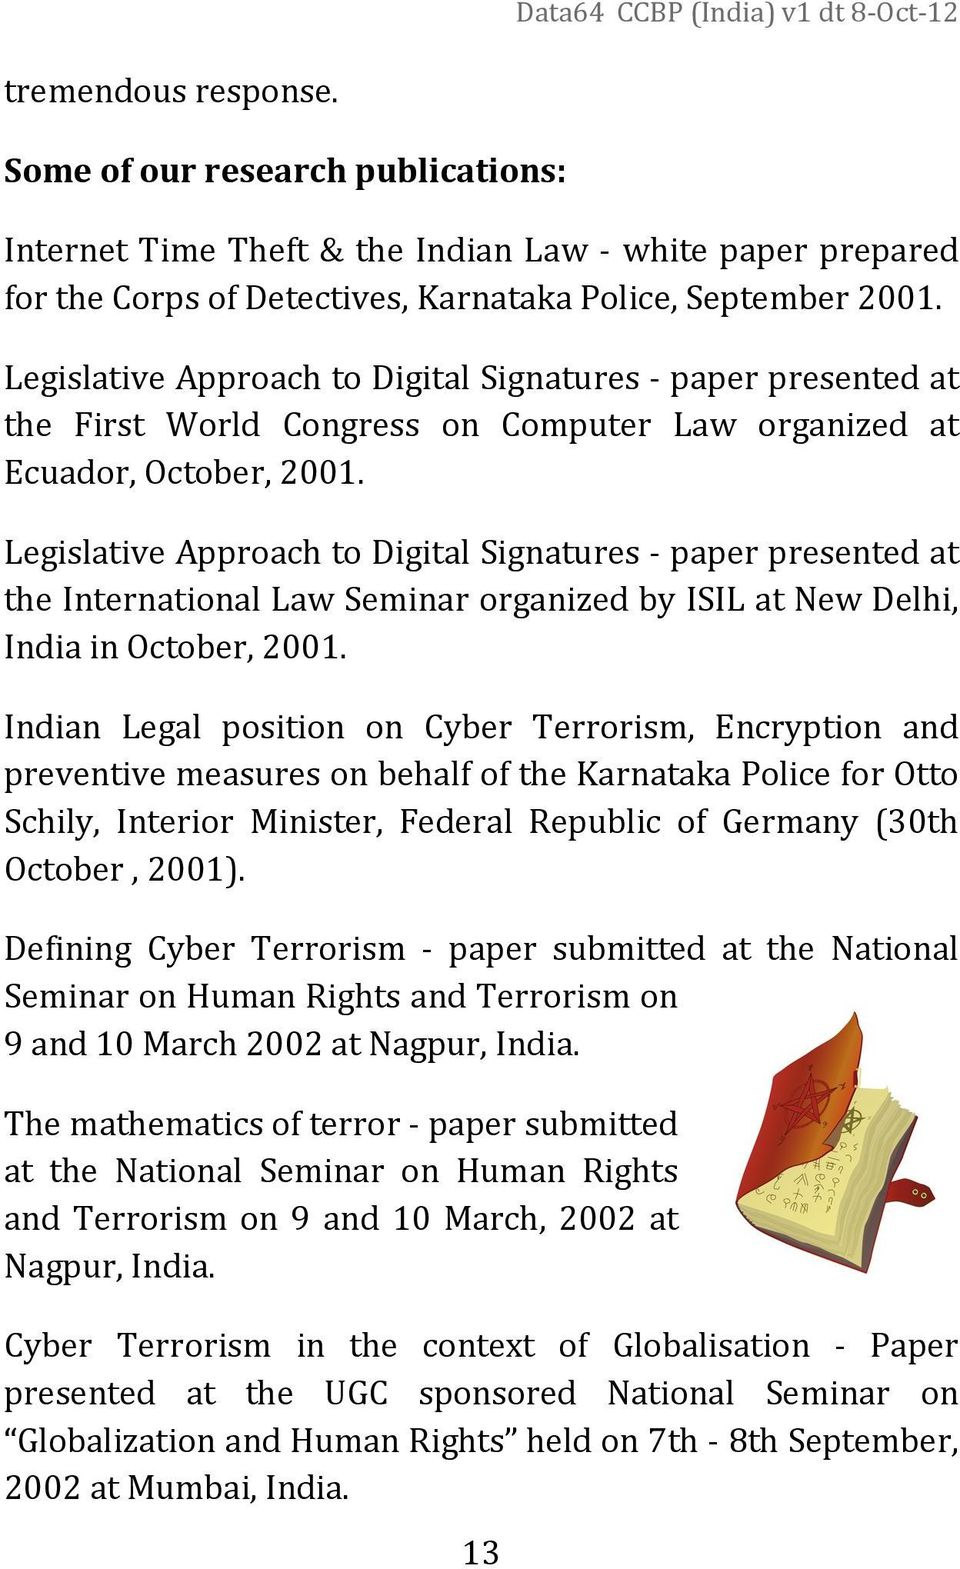 Legislative Approach to Digital Signatures - paper presented at the International Law Seminar organized by ISIL at New Delhi, India in October, 2001.